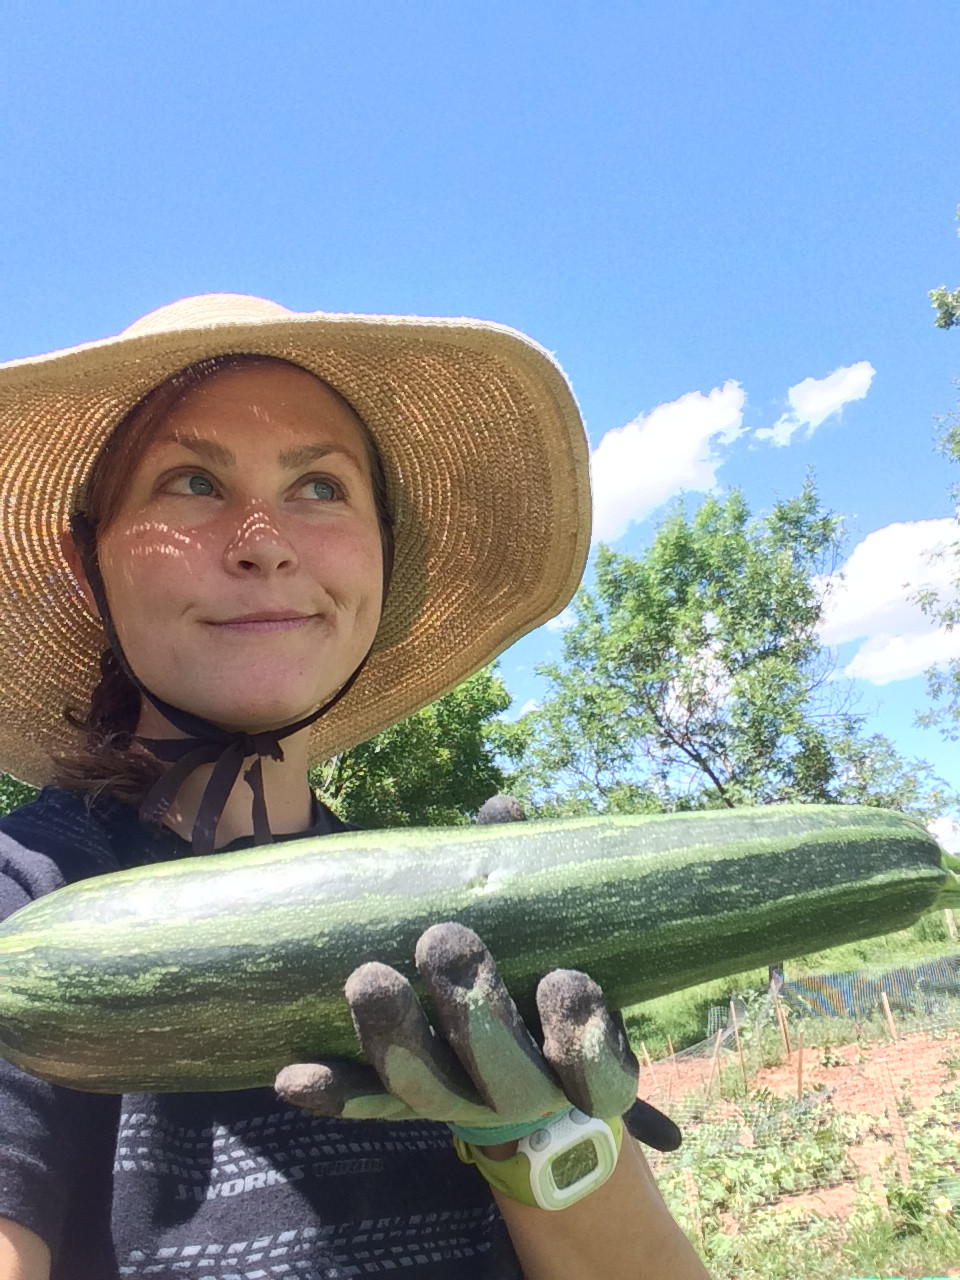 Guess who is forced to love zucchini squash?